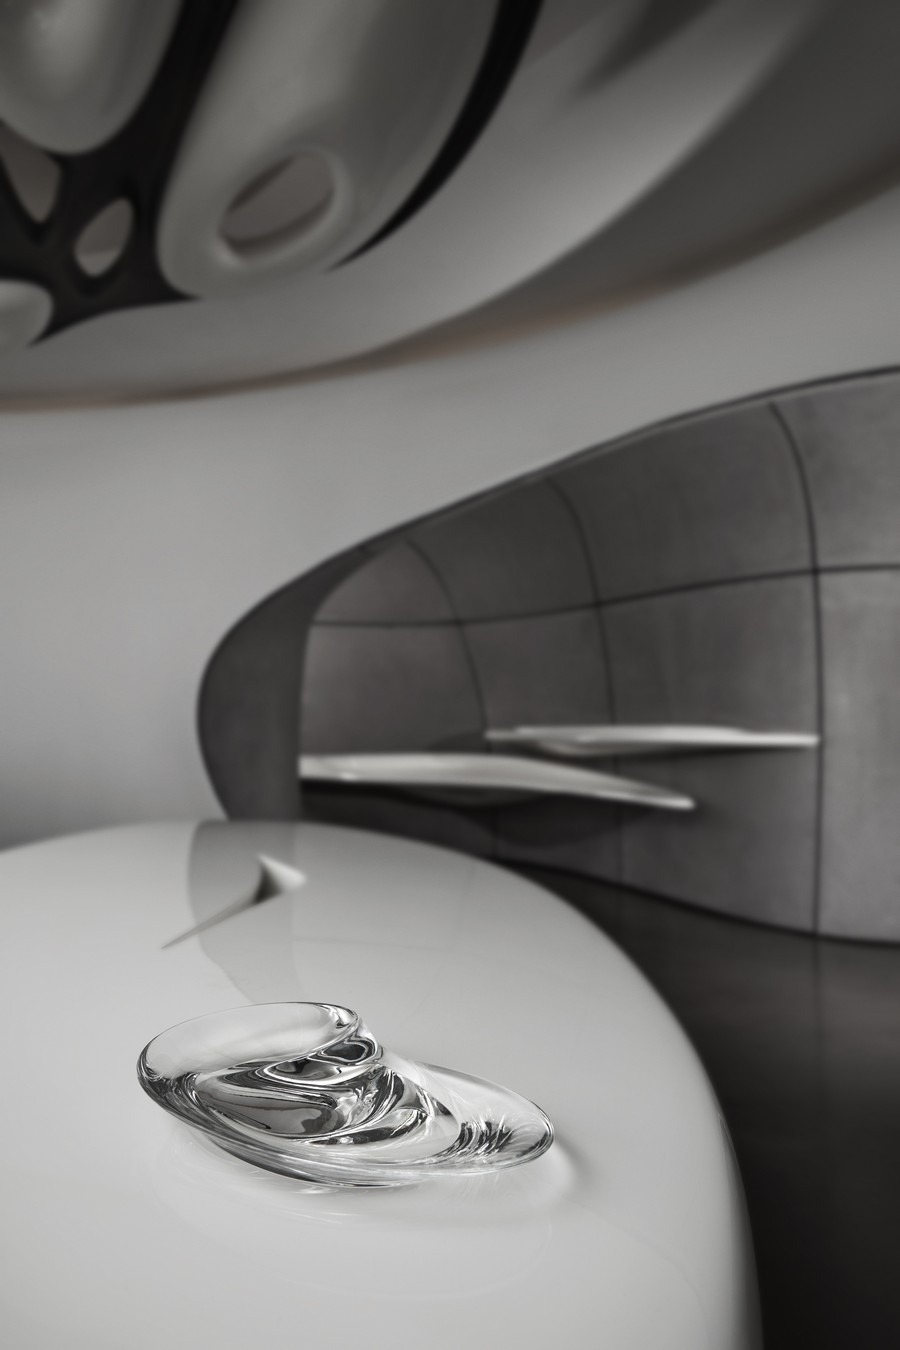 Get to Know More About the Zaha Hadid Design 2019 Collection 9 zaha hadid design Get to Know More About the Zaha Hadid Design 2019 Collection Get to Know More About the Zaha Hadid Design 2019 Collection 9